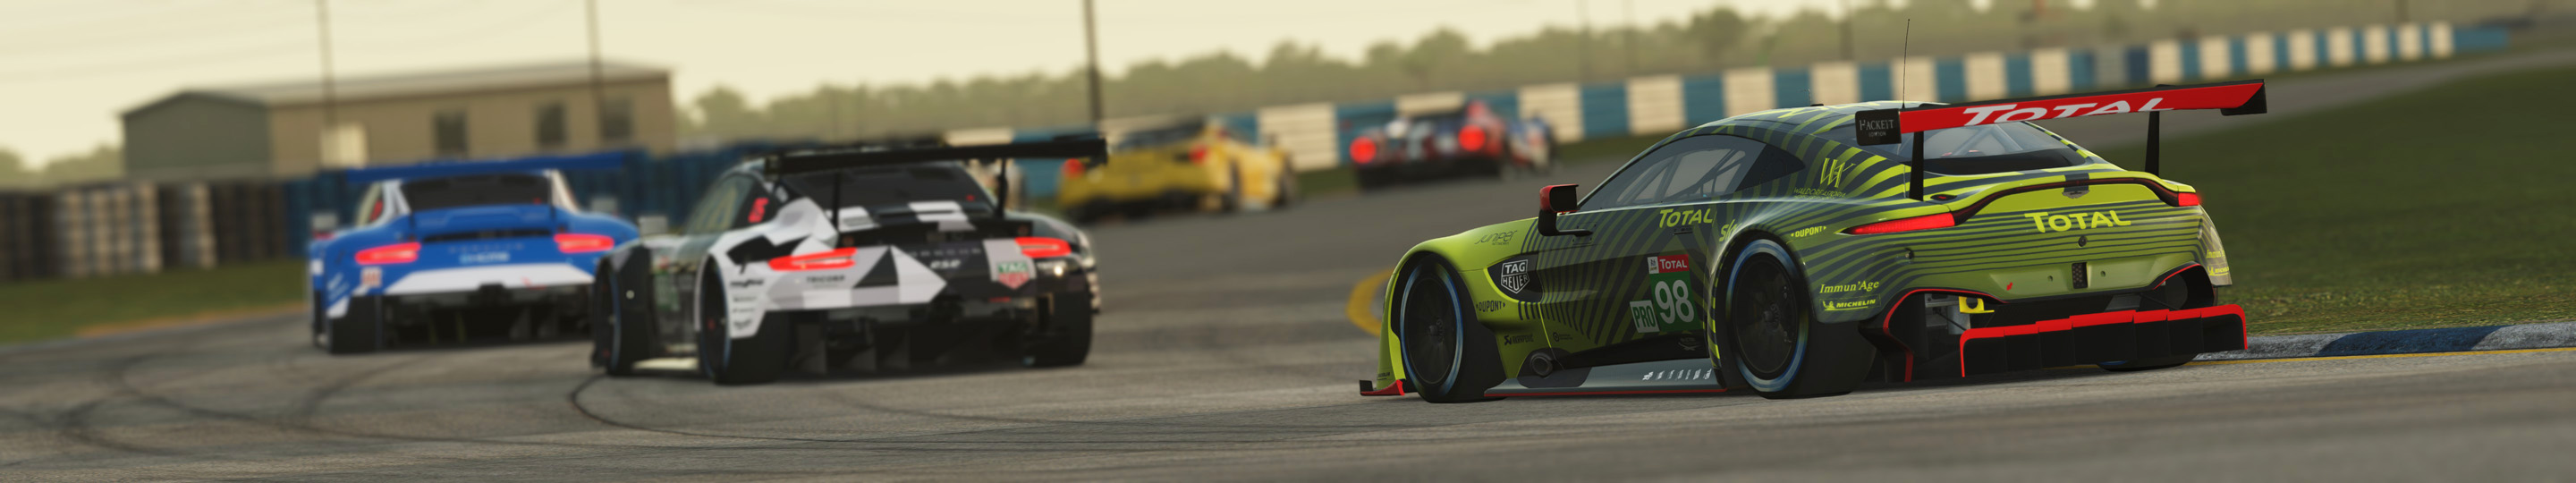 3 rFACTOR 2 CORVETTE C8 & FERRARI GTE at SEBRING copy.jpg